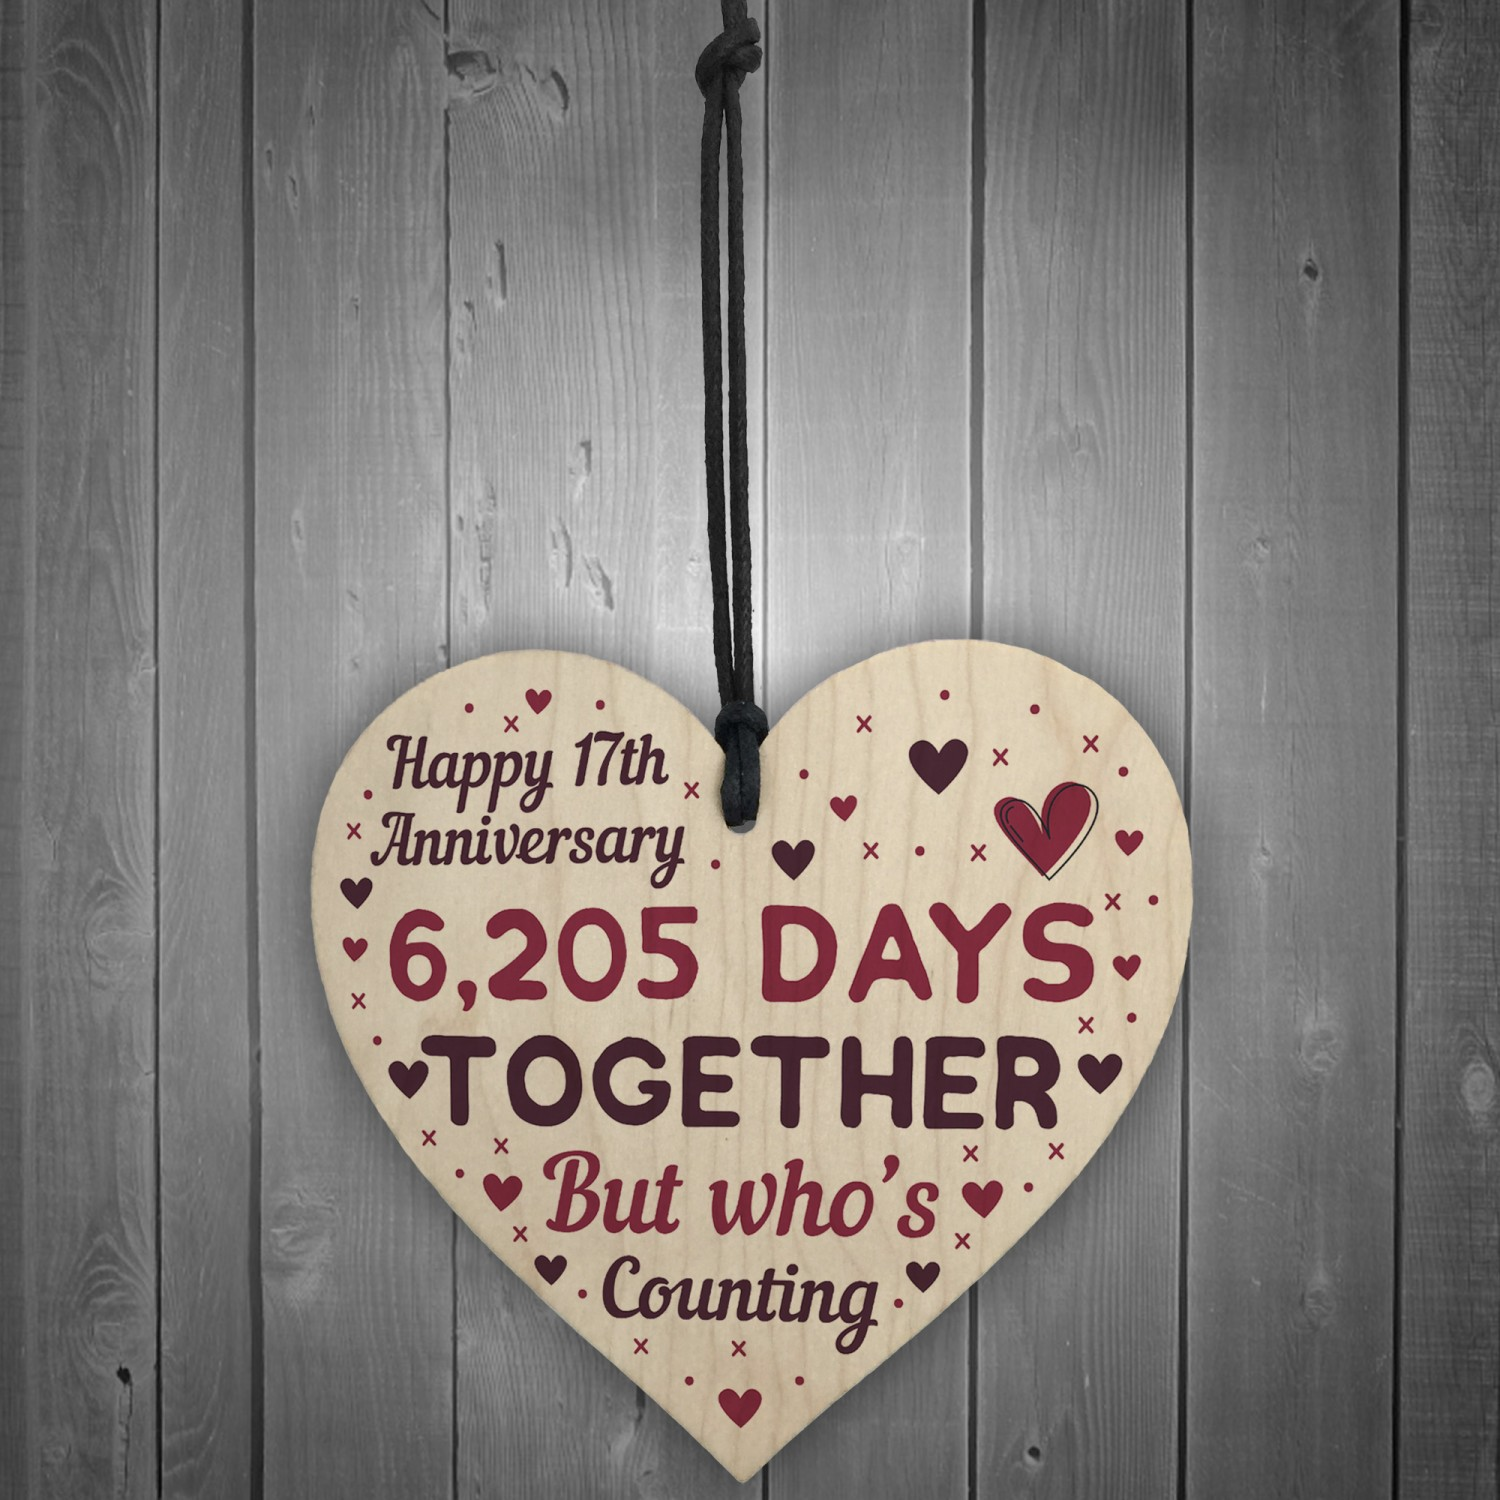 17th Anniversary Gift For Wife: Handmade Wood Heart Gift To Celebrate 17th Wedding Anniversary